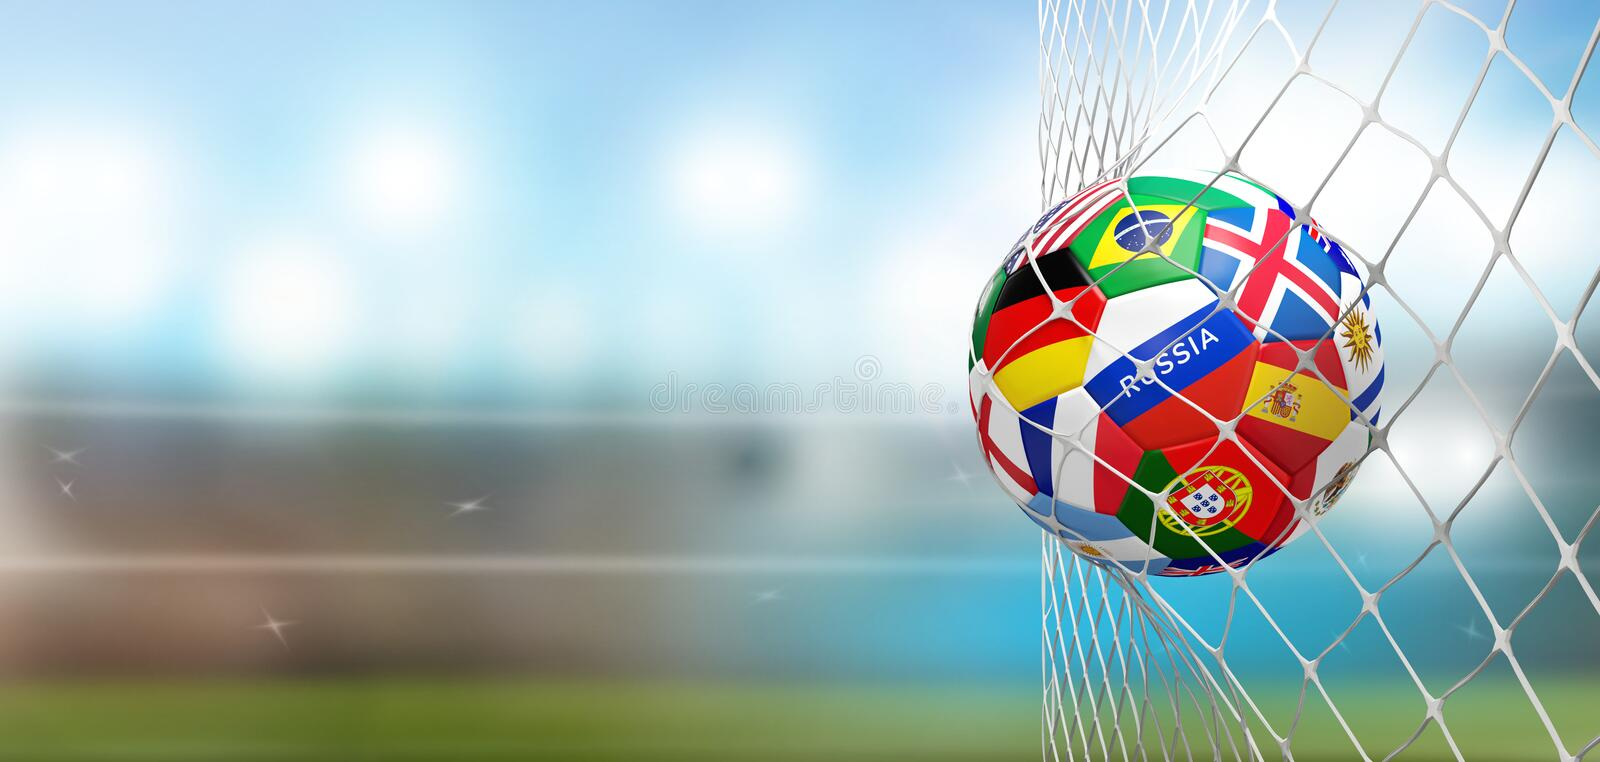 Soccer goal soccer ball with flags in net at soccer stadium 3d r royalty free illustration